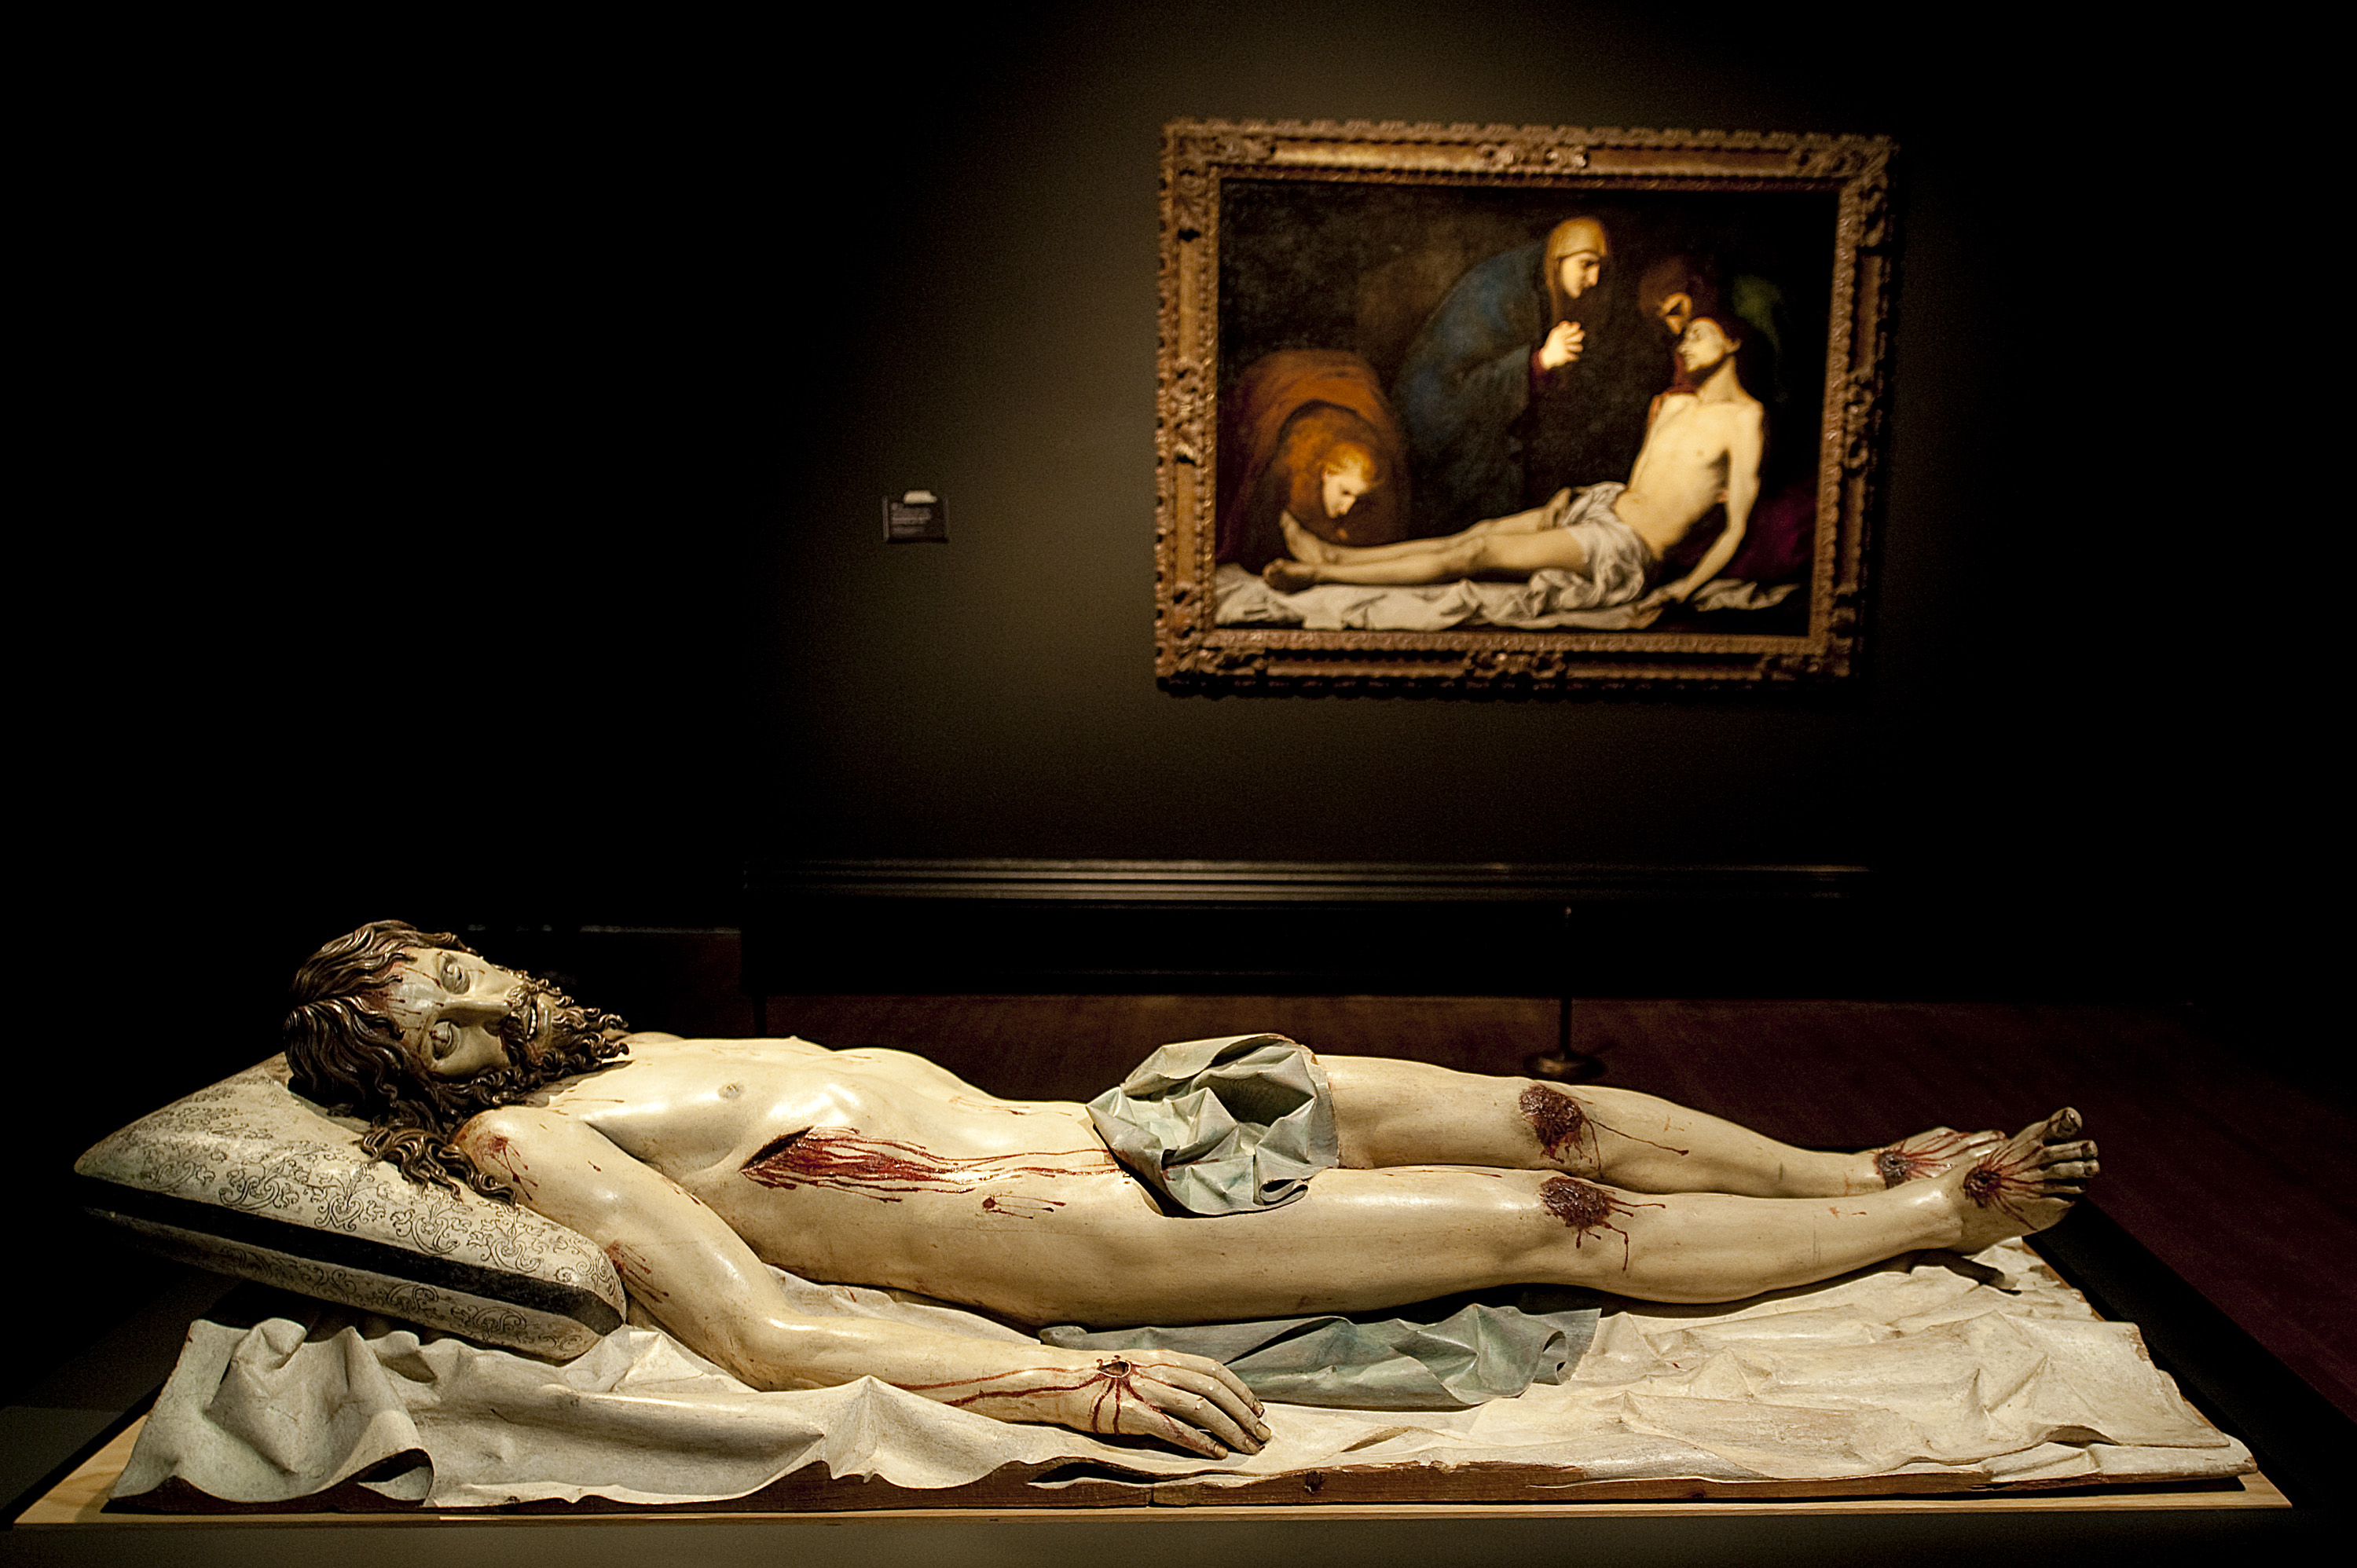 "'Dead Christ, 1625-30' by Gregorio Ferandez and unkown painter (front) and 'The Lamentation over the Dead Christ', early 1620s by Jusepe de Ribera (1591-1652) are seen as part of the fourth coming The Sacred Made Real"" exhibition at the National Gallery in Central London on October 16, 2009. AFP PHOTO/Ben Stansall / AFP PHOTO / BEN STANSALL"